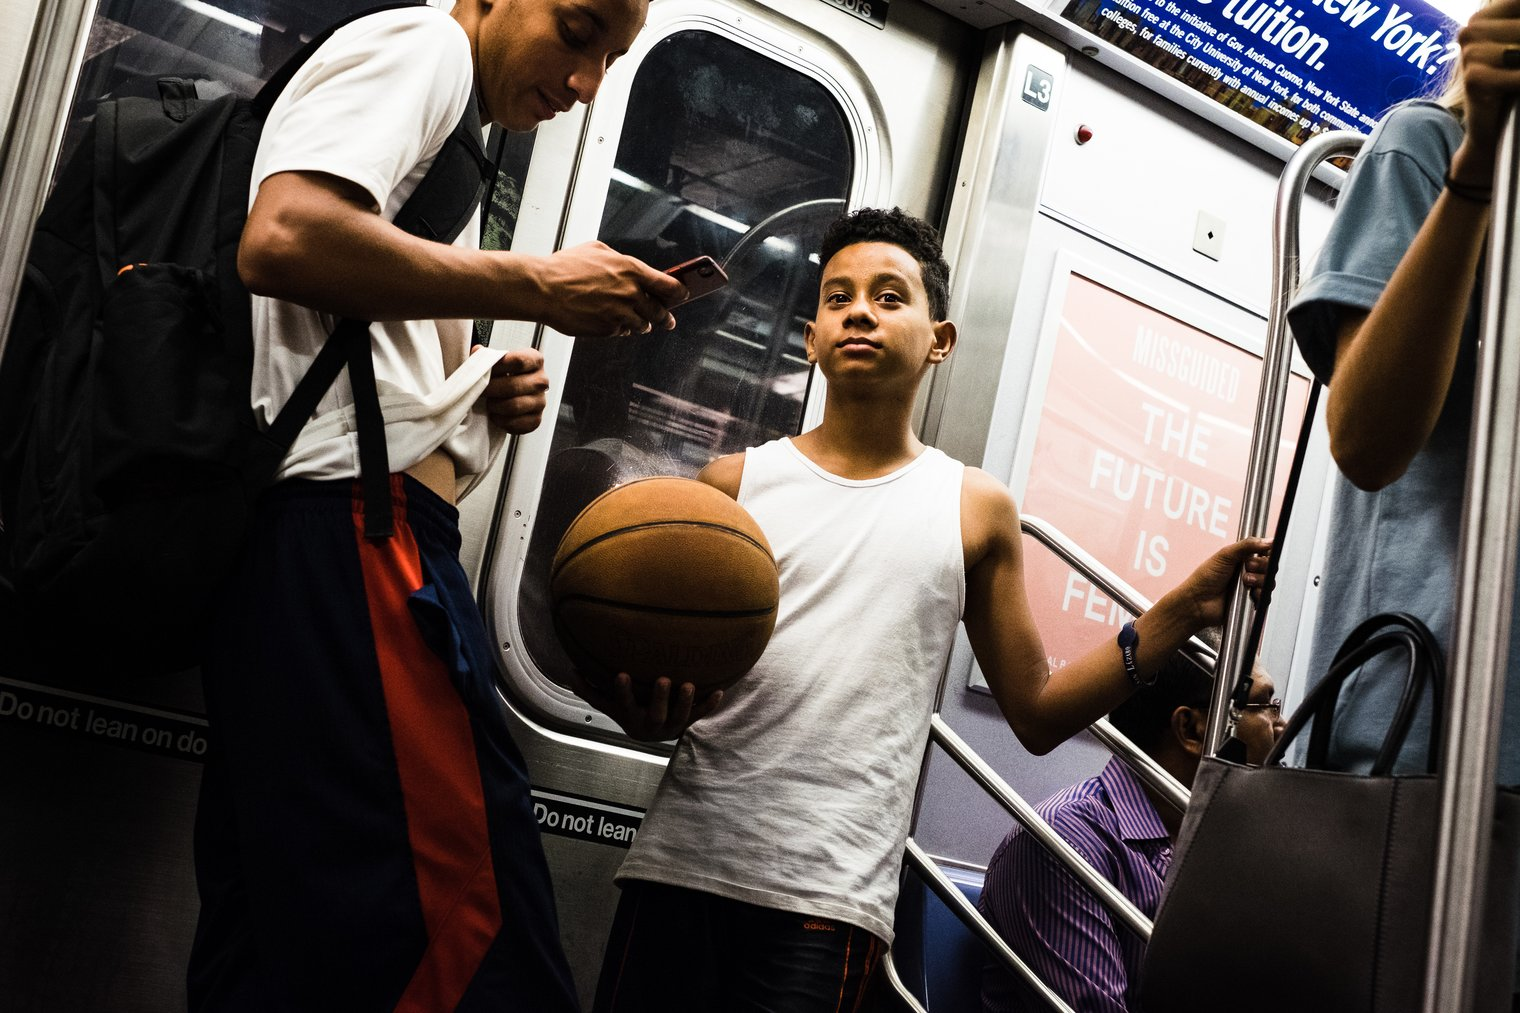 A kid with a basketball on the subway